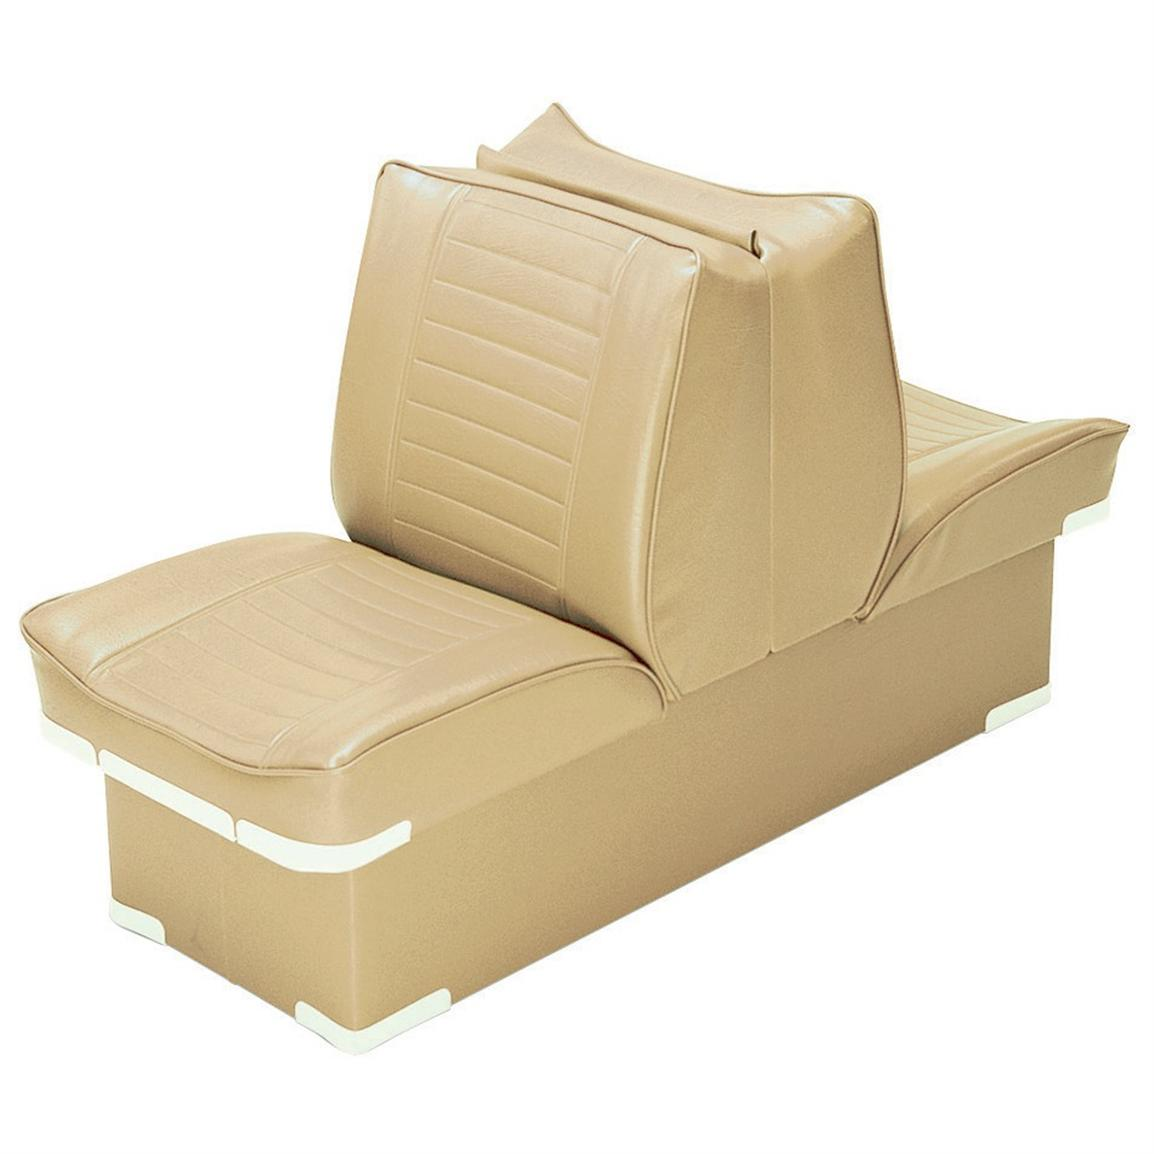 Wise Boat Lounge Seat, Sand